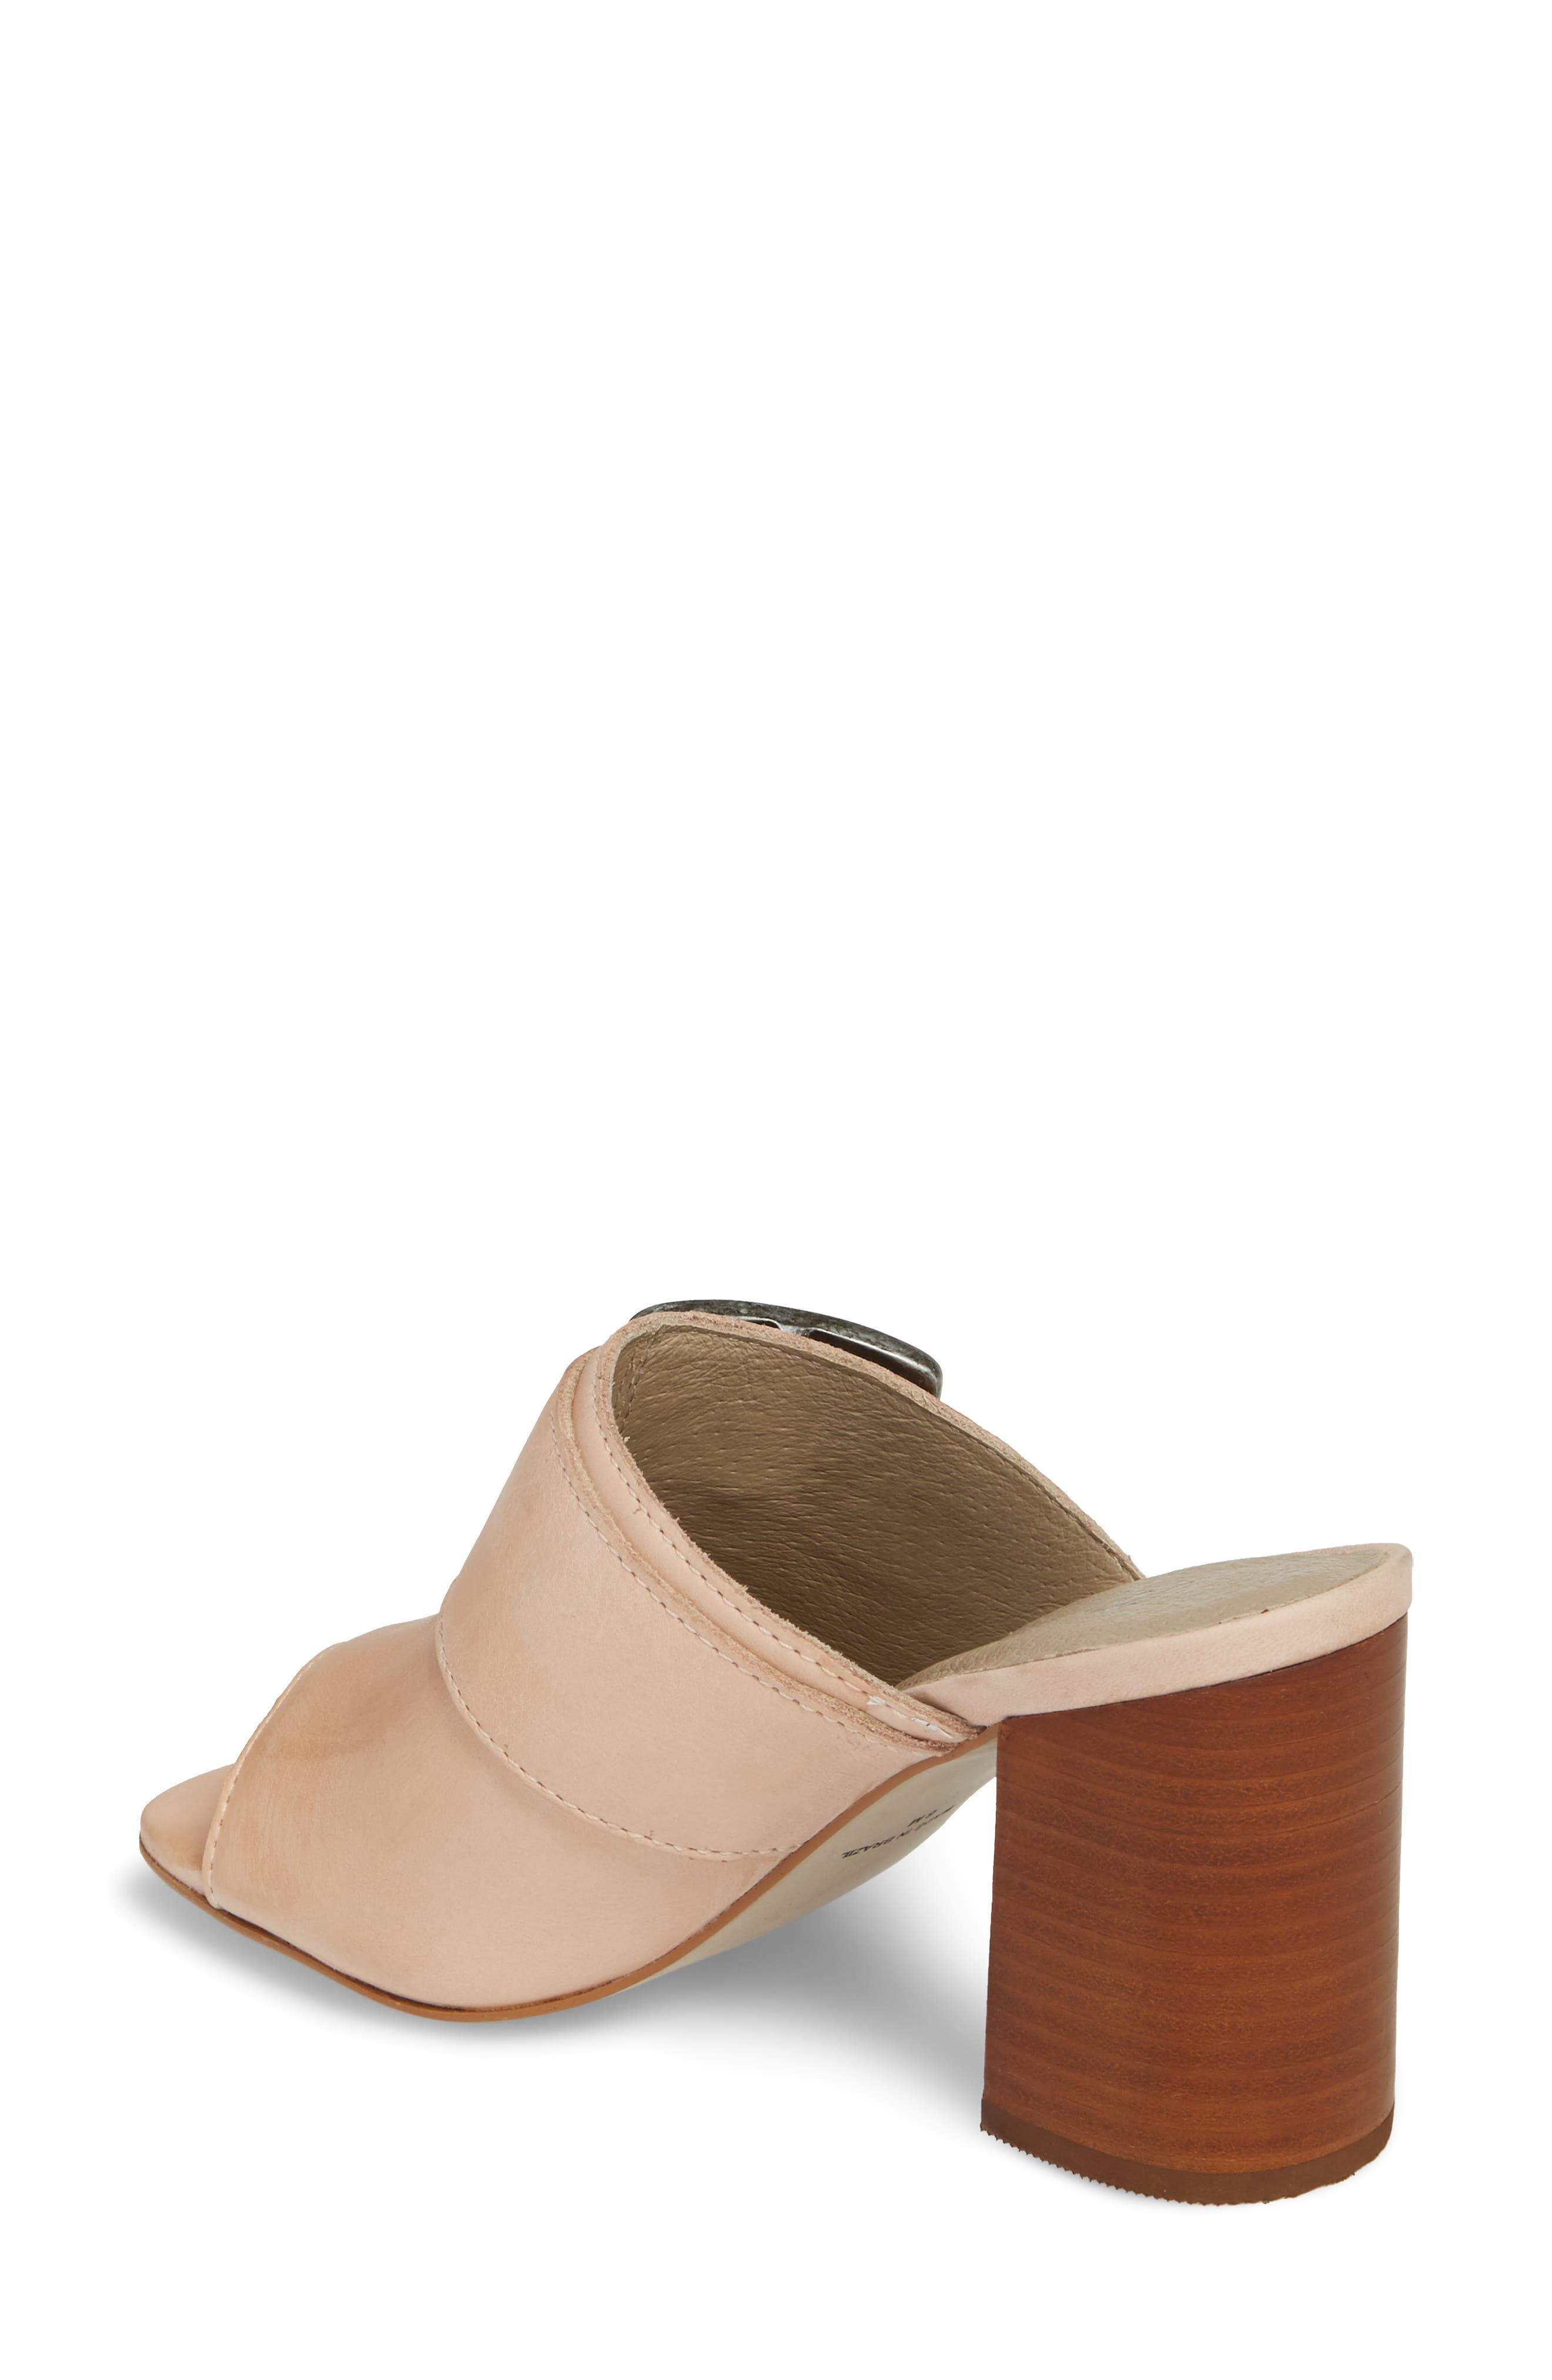 Beatrice Sandal,                             Alternate thumbnail 2, color,                             Nude Leather